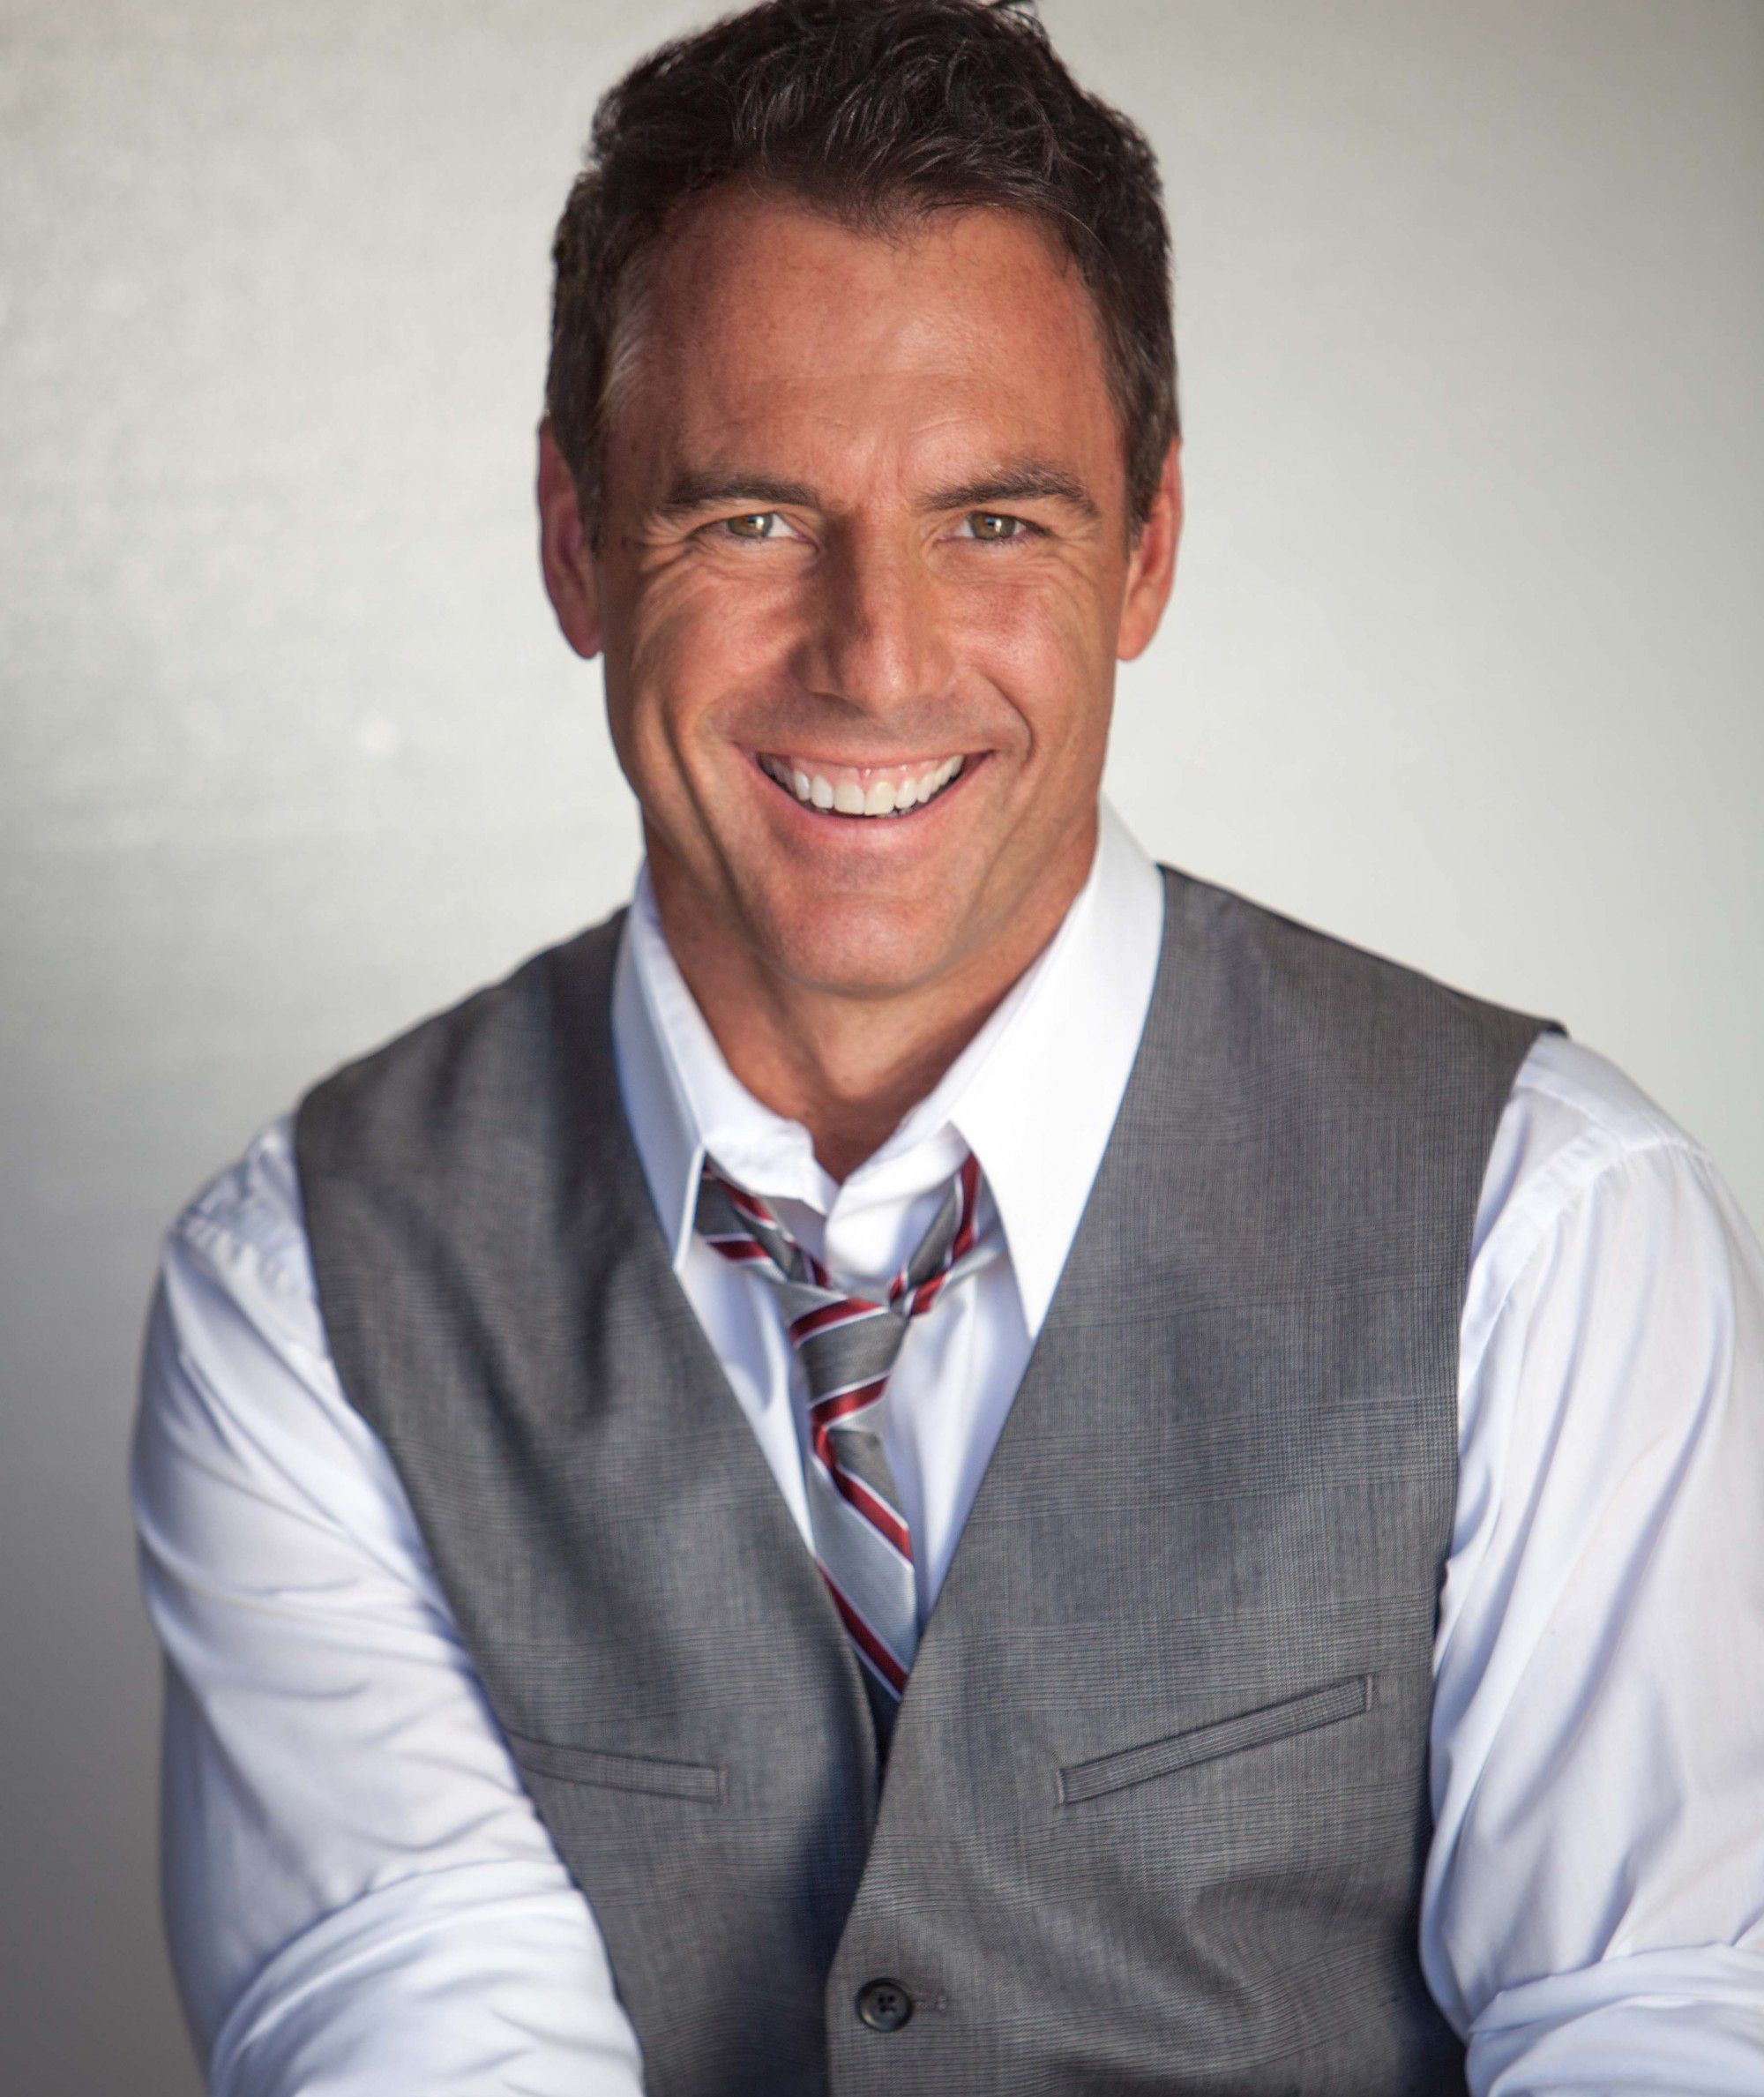 Home & Family, Mark Steines